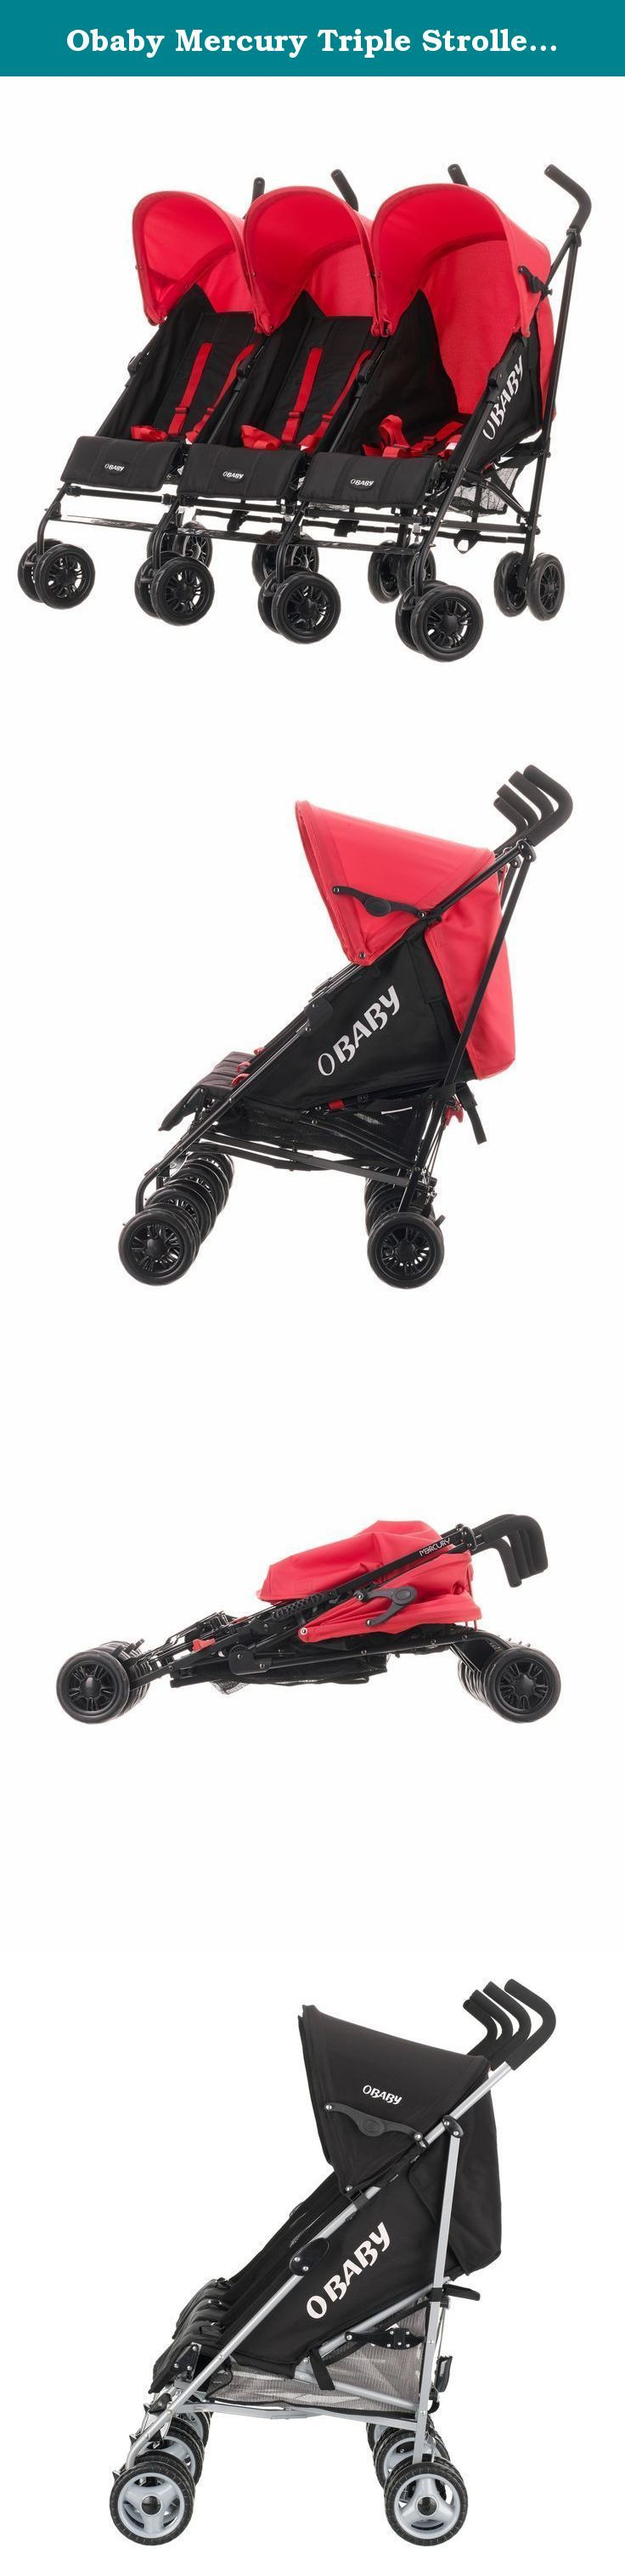 Obaby Mercury Triple Stroller Black/Red. Obaby has